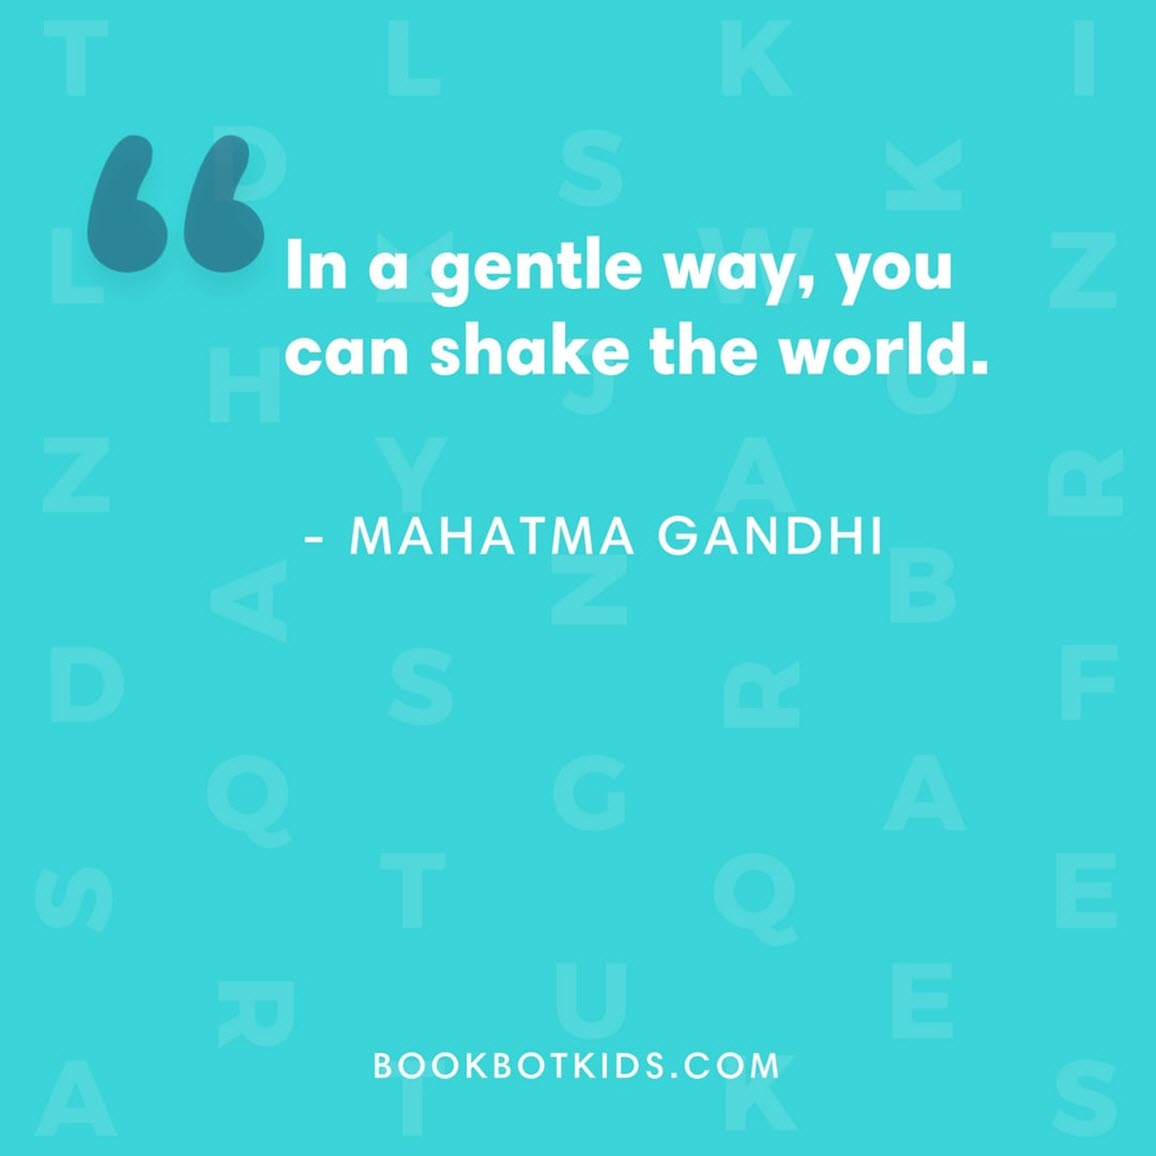 In a gentle way, you can shake the world. – Mahatma Gandhi